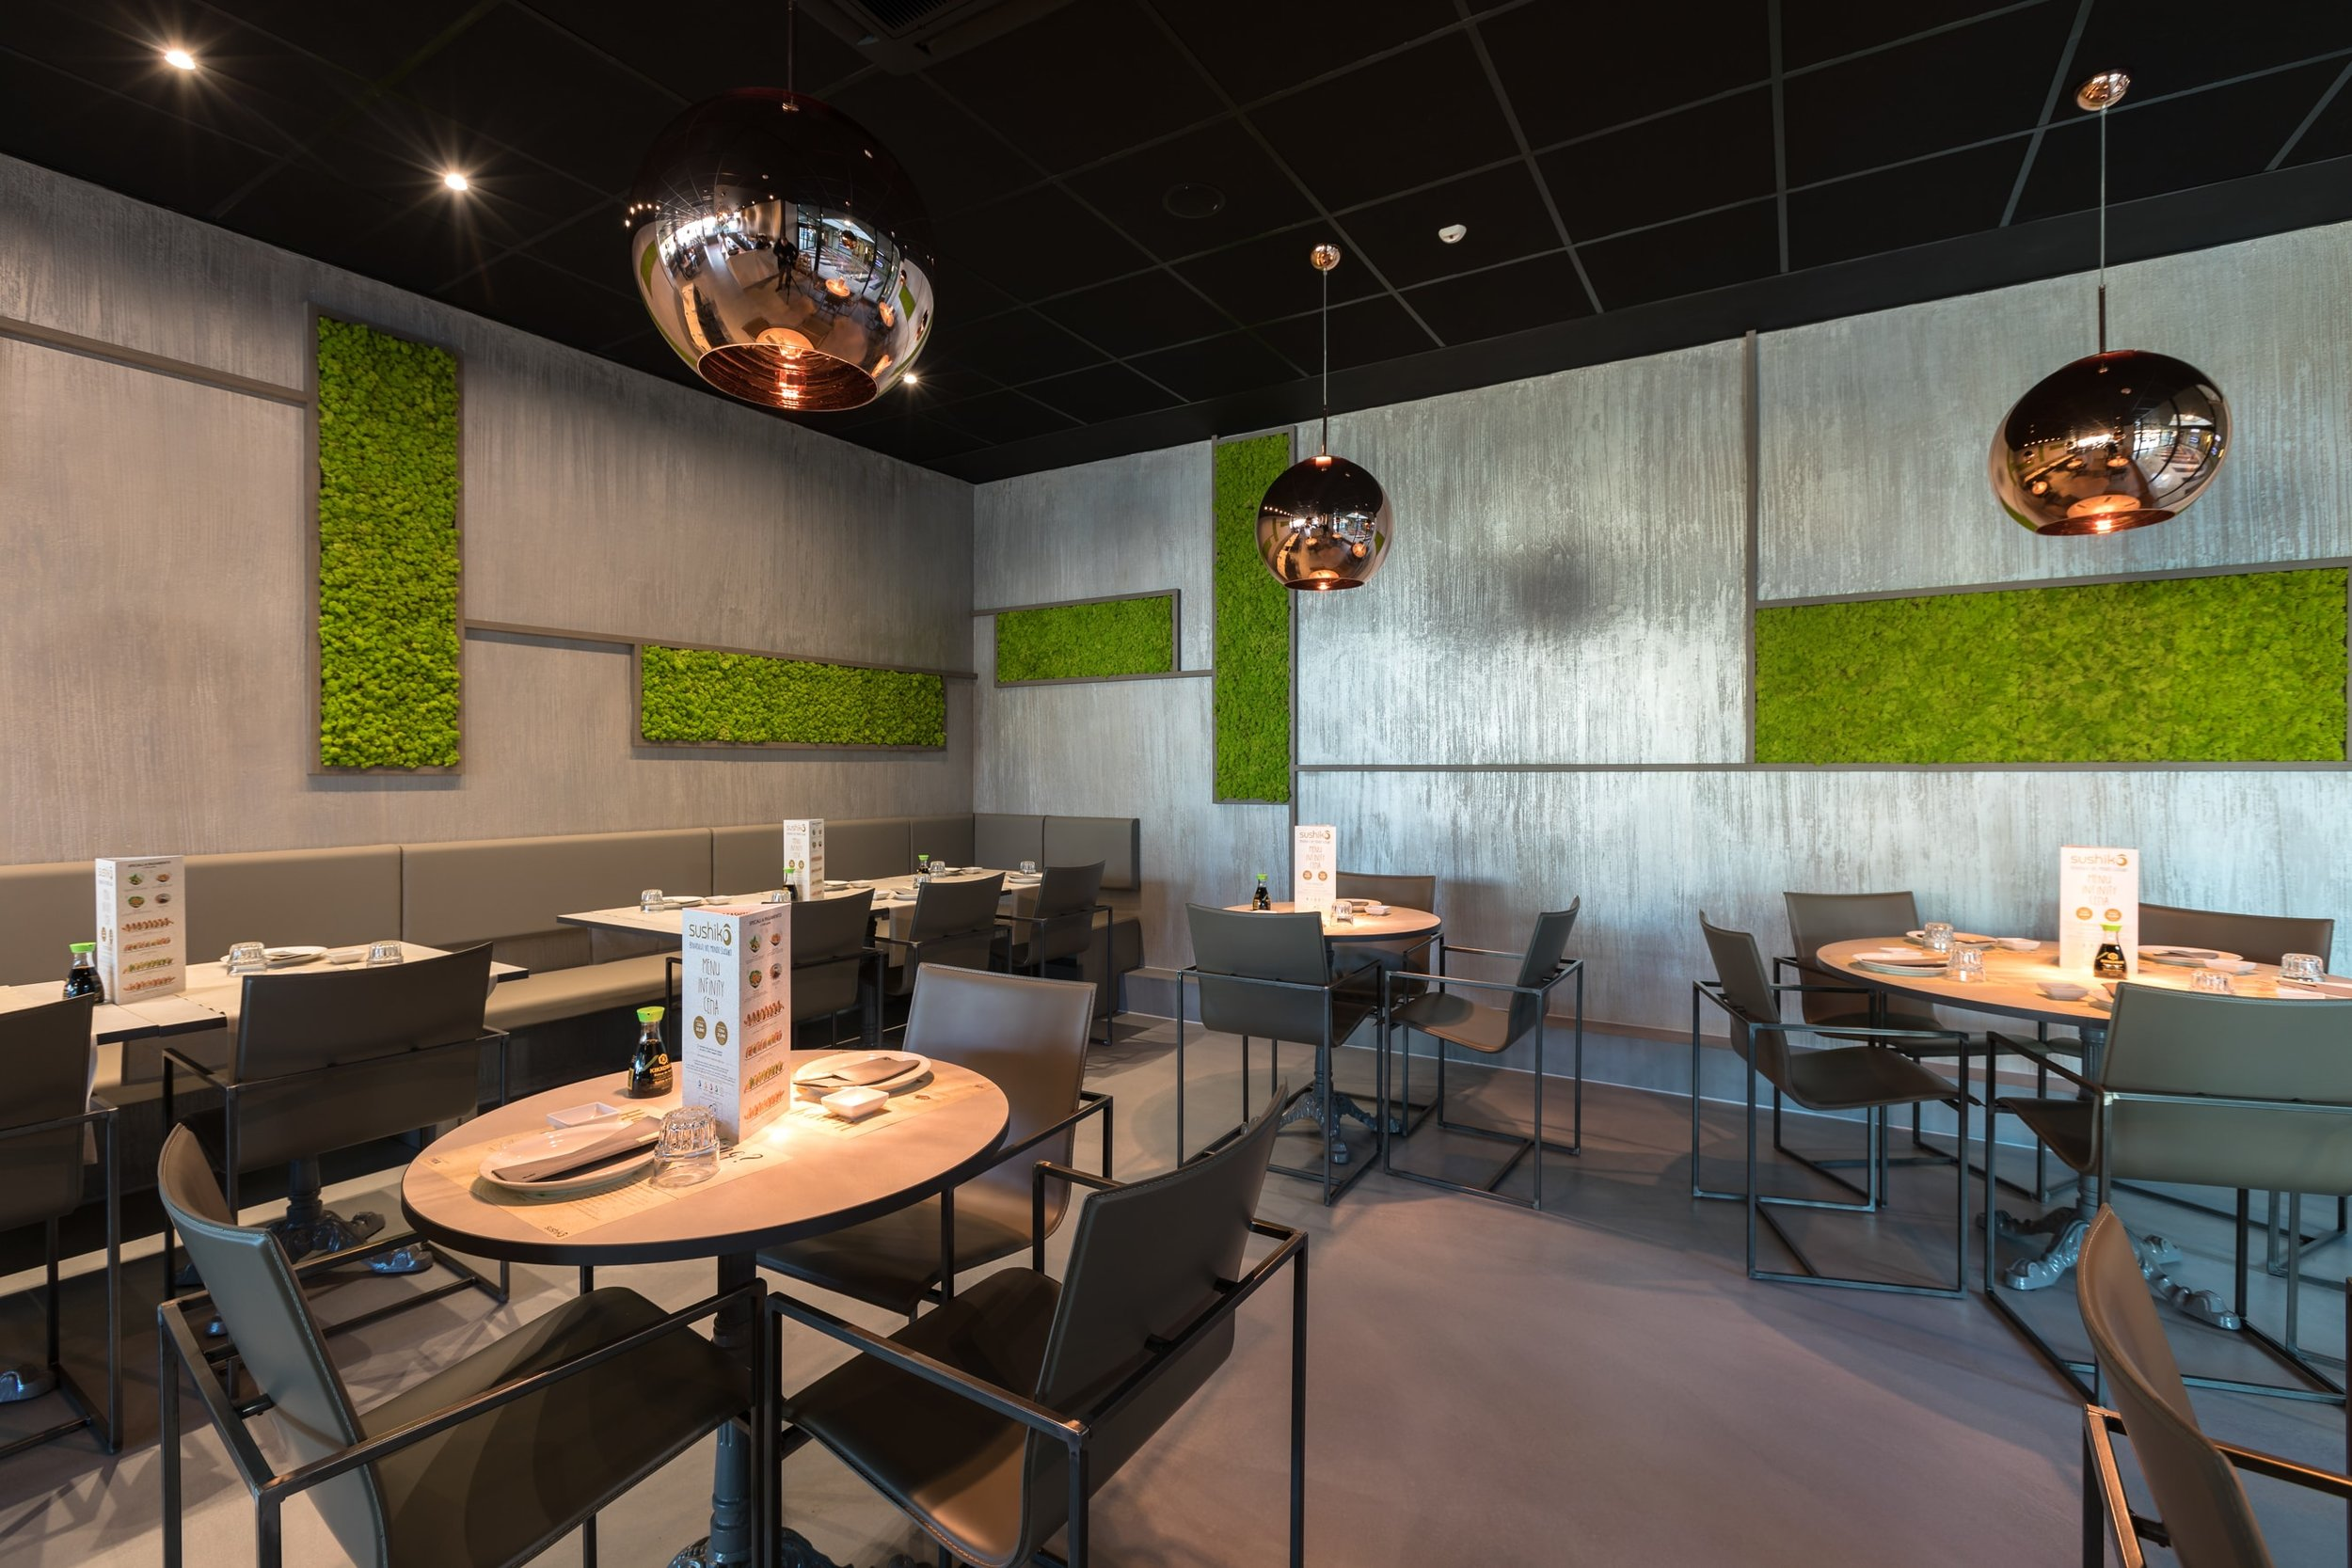 Restaurant for acoustic absorbency